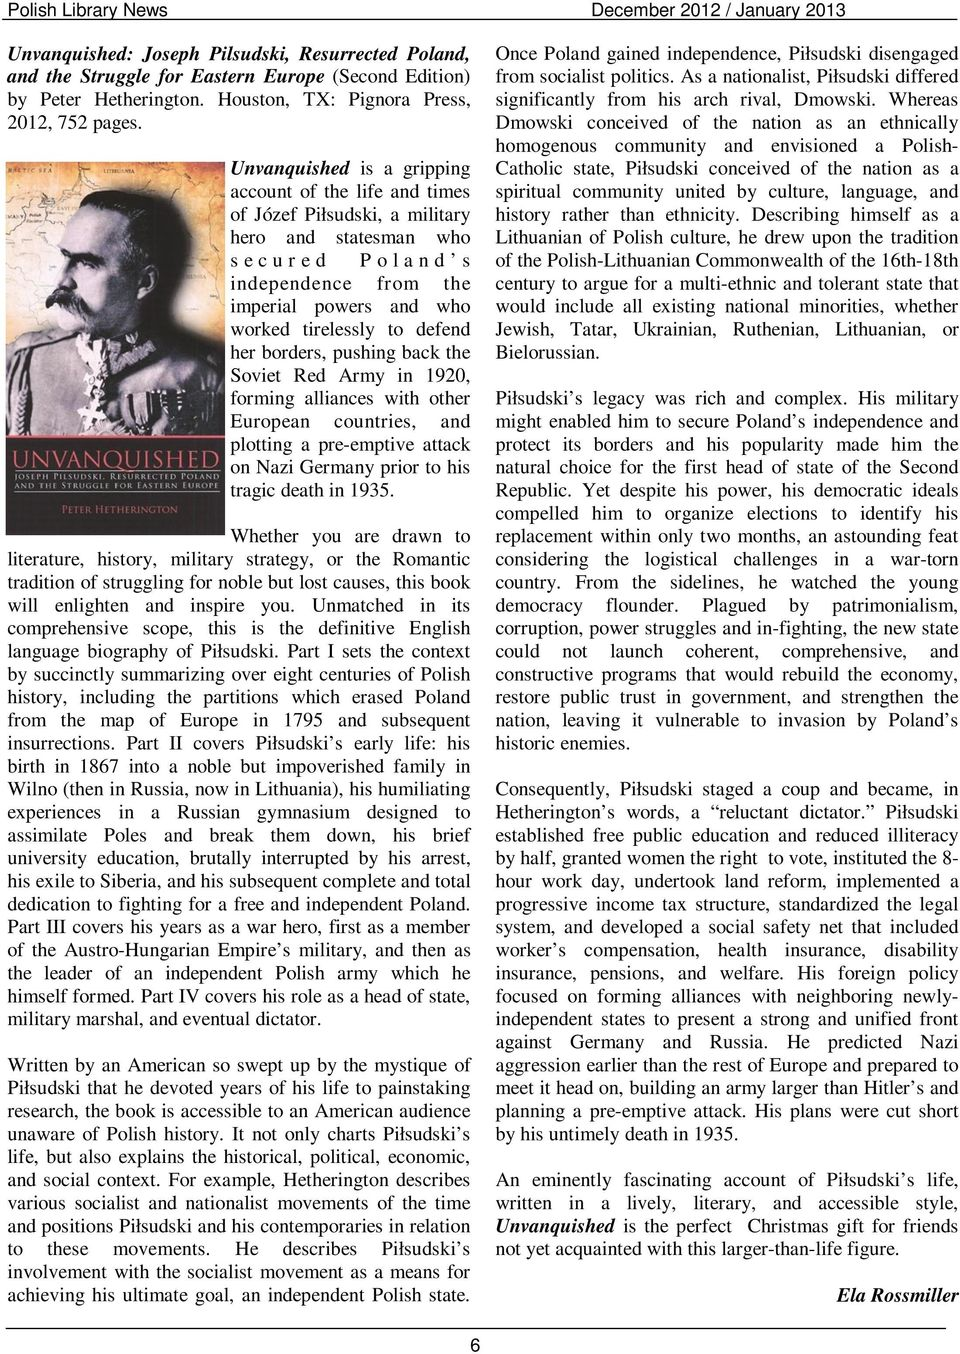 Unvanquished is a gripping account of the life and times of Józef Piłsudski, a military hero and statesman who s e c u r e d P o l a n d s independence from the imperial powers and who worked